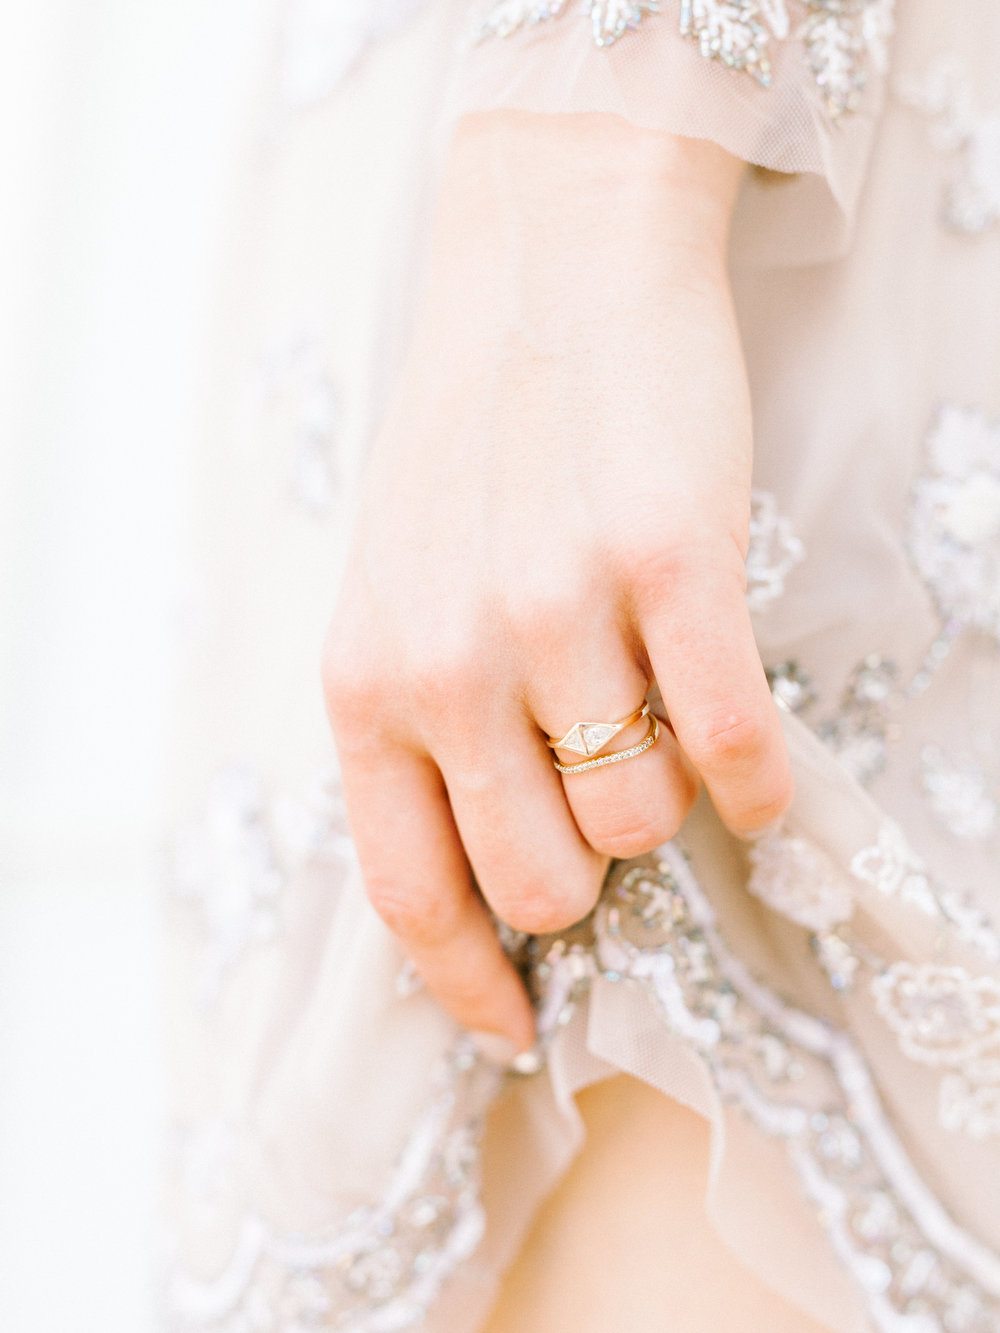 These delicate Bario Neal wedding rings gave a modern touch to our whimsical elopement wedding inspiration shoot at the Woodlands Mansion in Philadelphia.